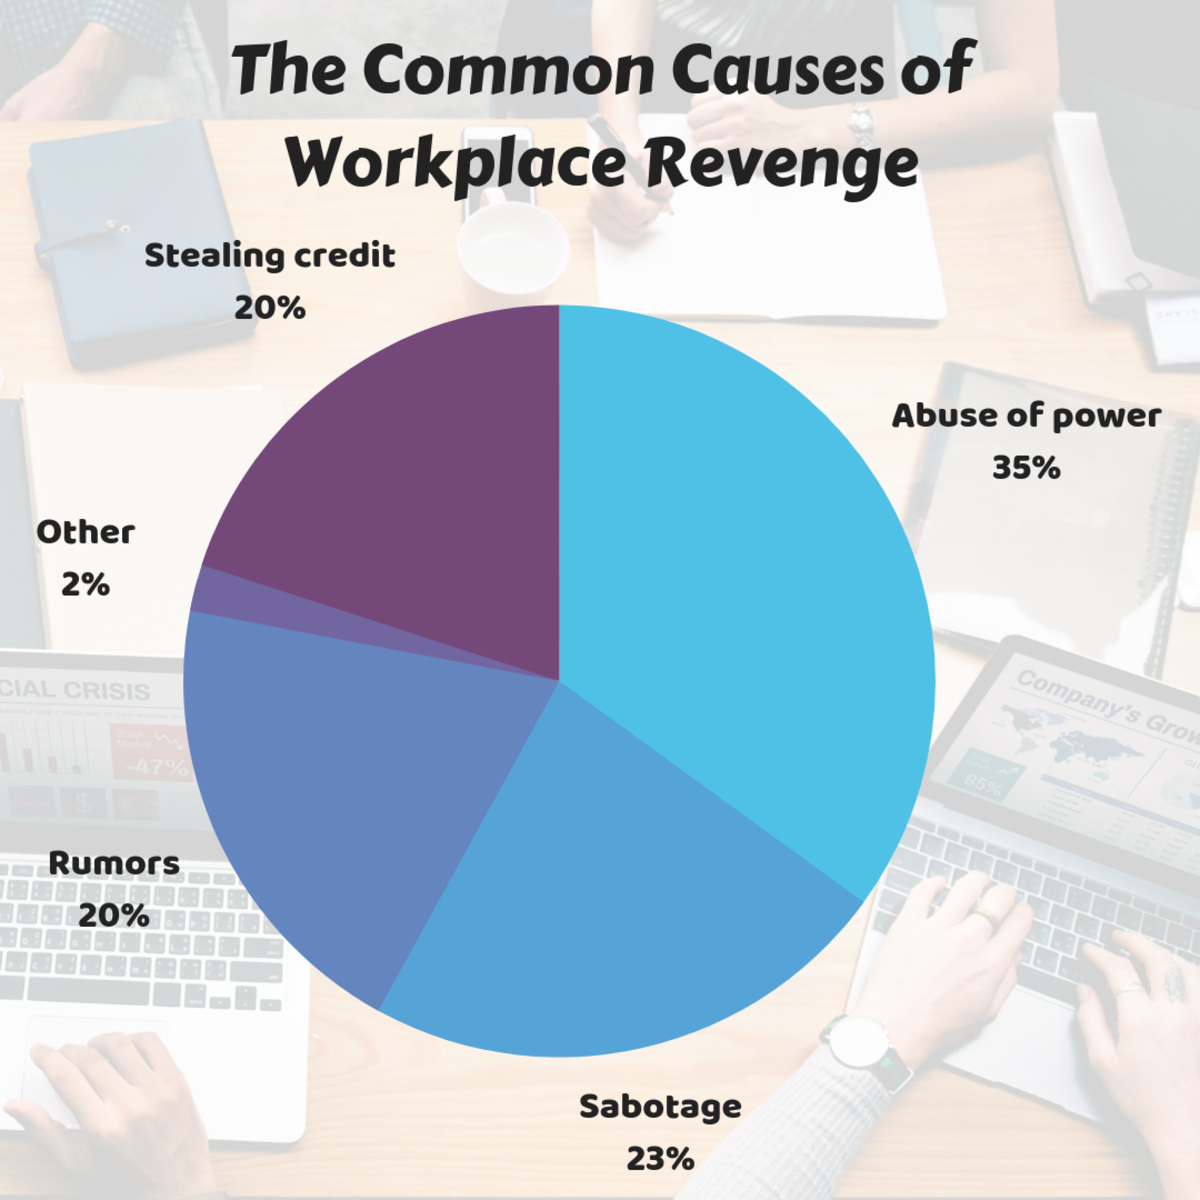 Information adapted from: http://www.hrmorning.com/revenge-in-the-workplace-top-10-ways-employees-get-back-at-each-other/